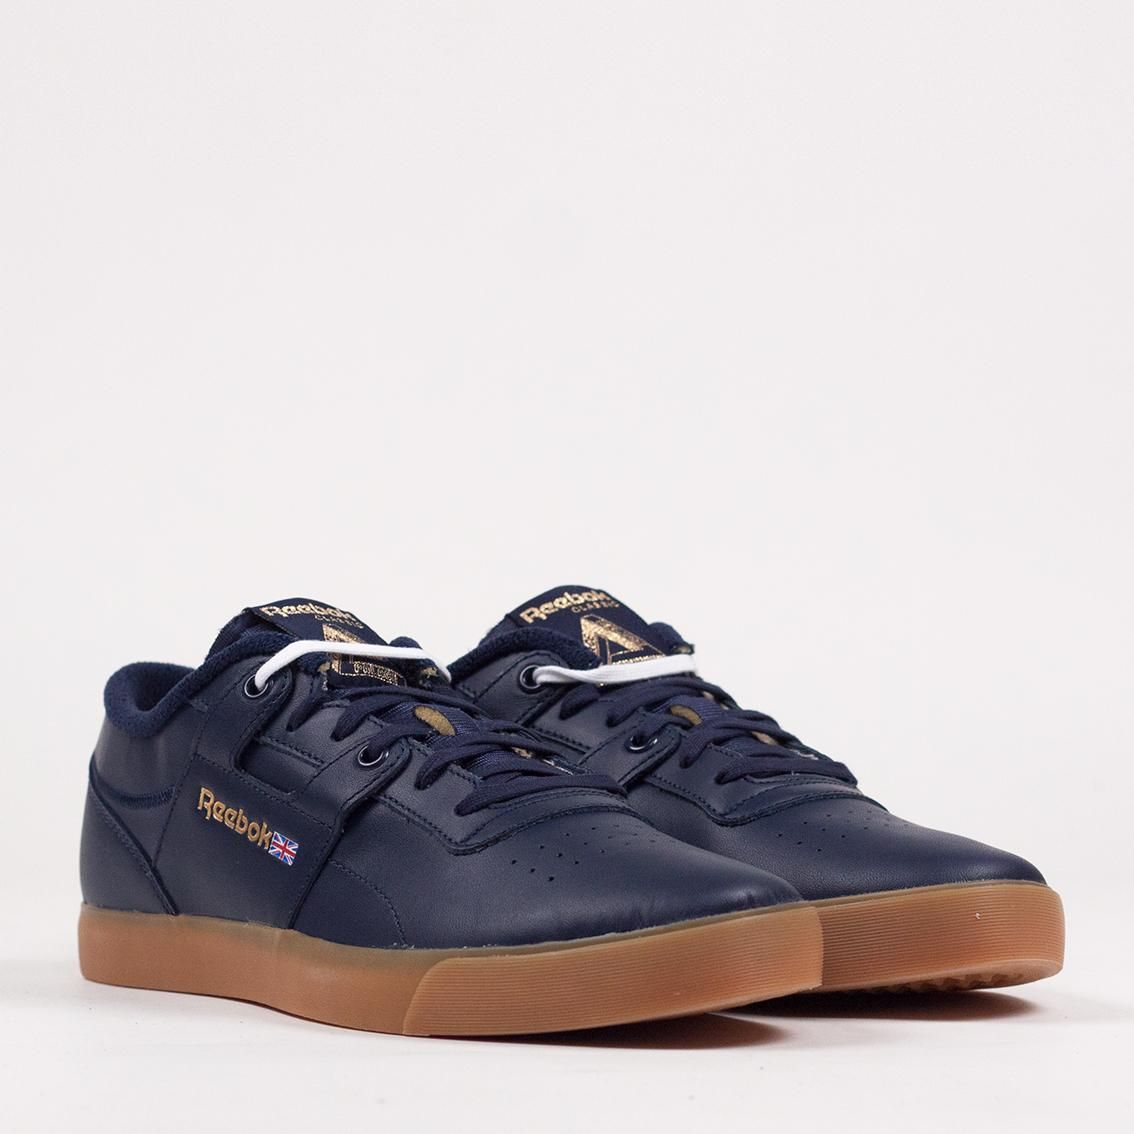 Reebok x Palace Workout Vulc Low Clean FVS  6a094df2b